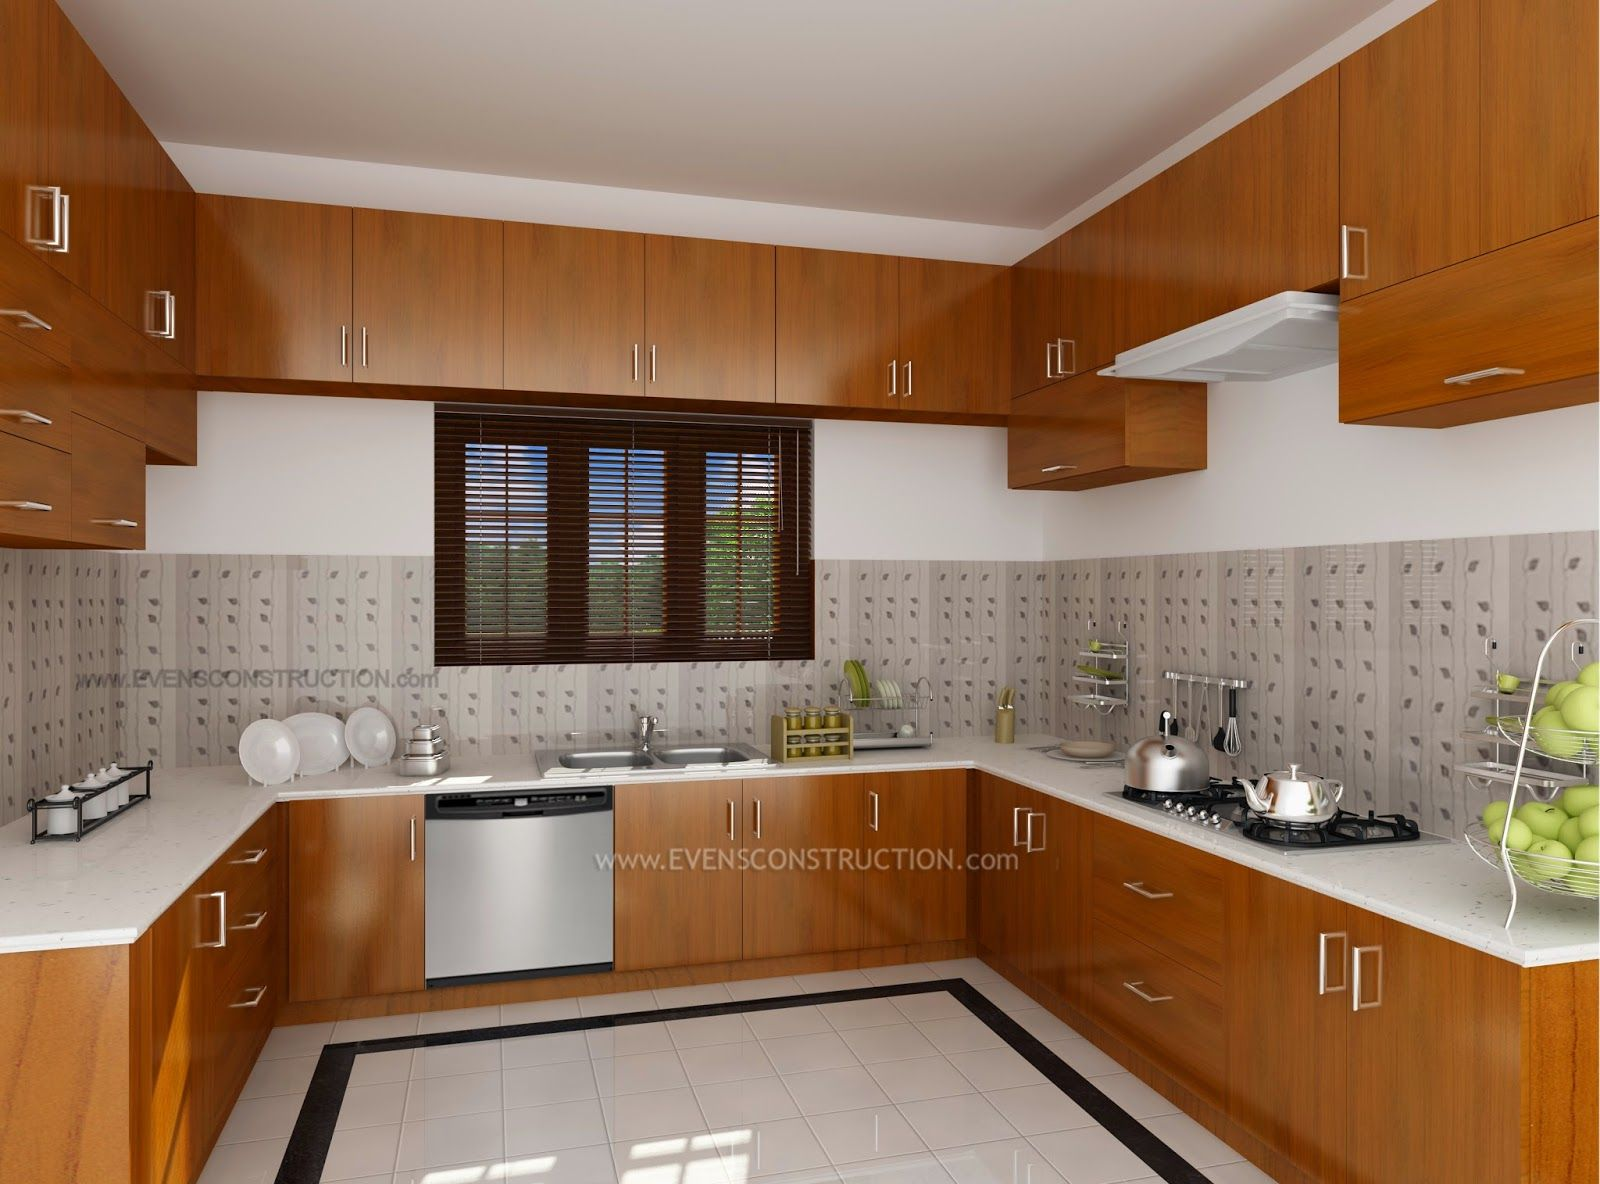 Modern Kitchen Design Kerala In Interior E Inside Decorating